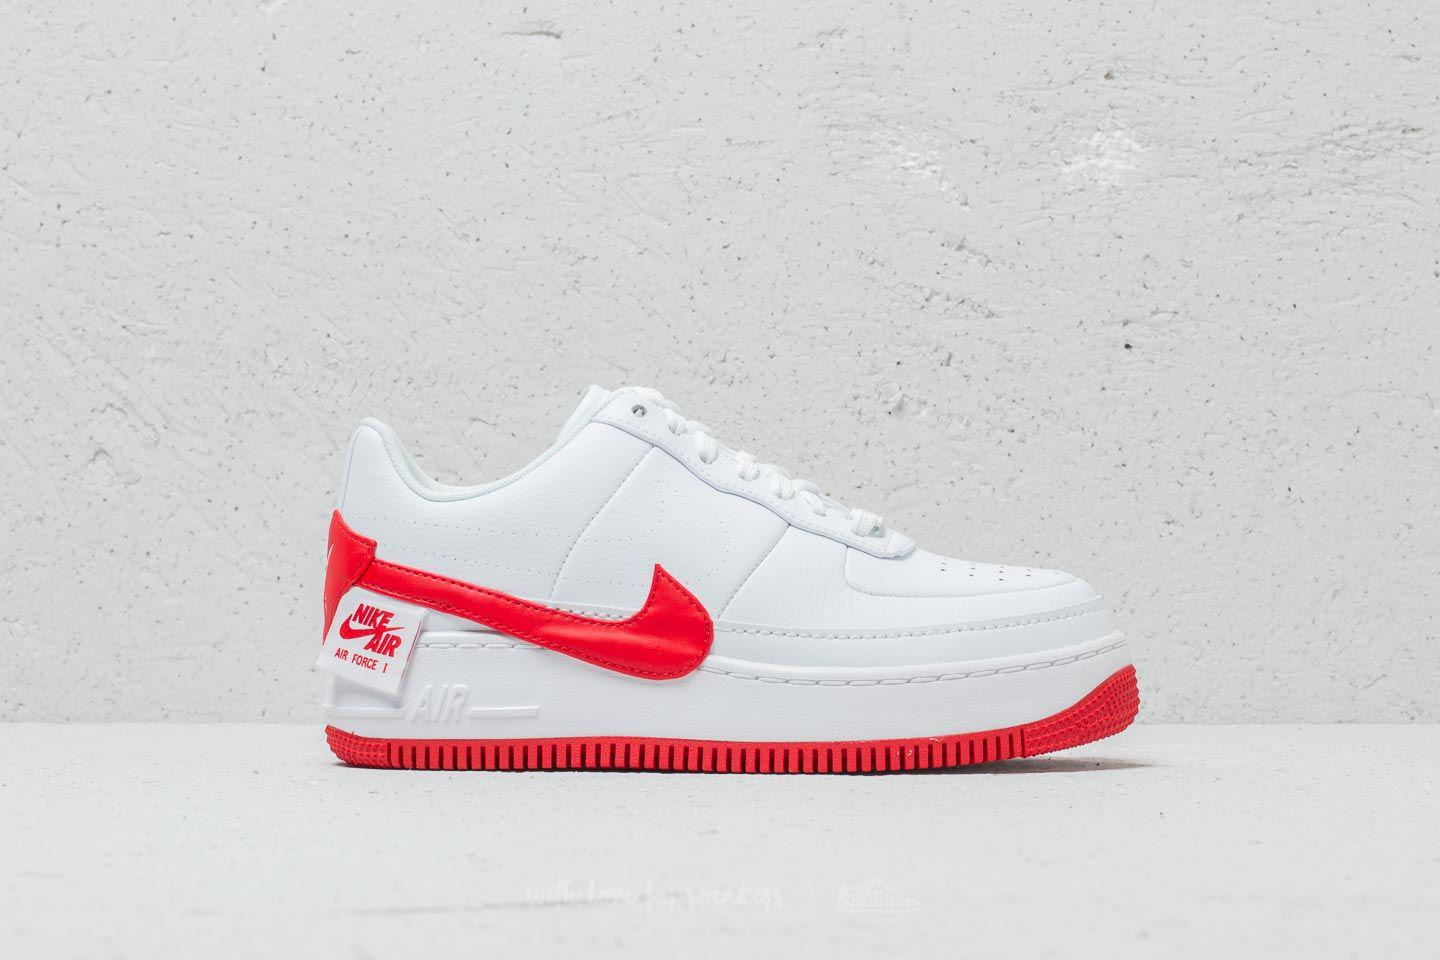 Nike Leather Air Force 1 Jester Xx Wmns White/ University Red - Lyst